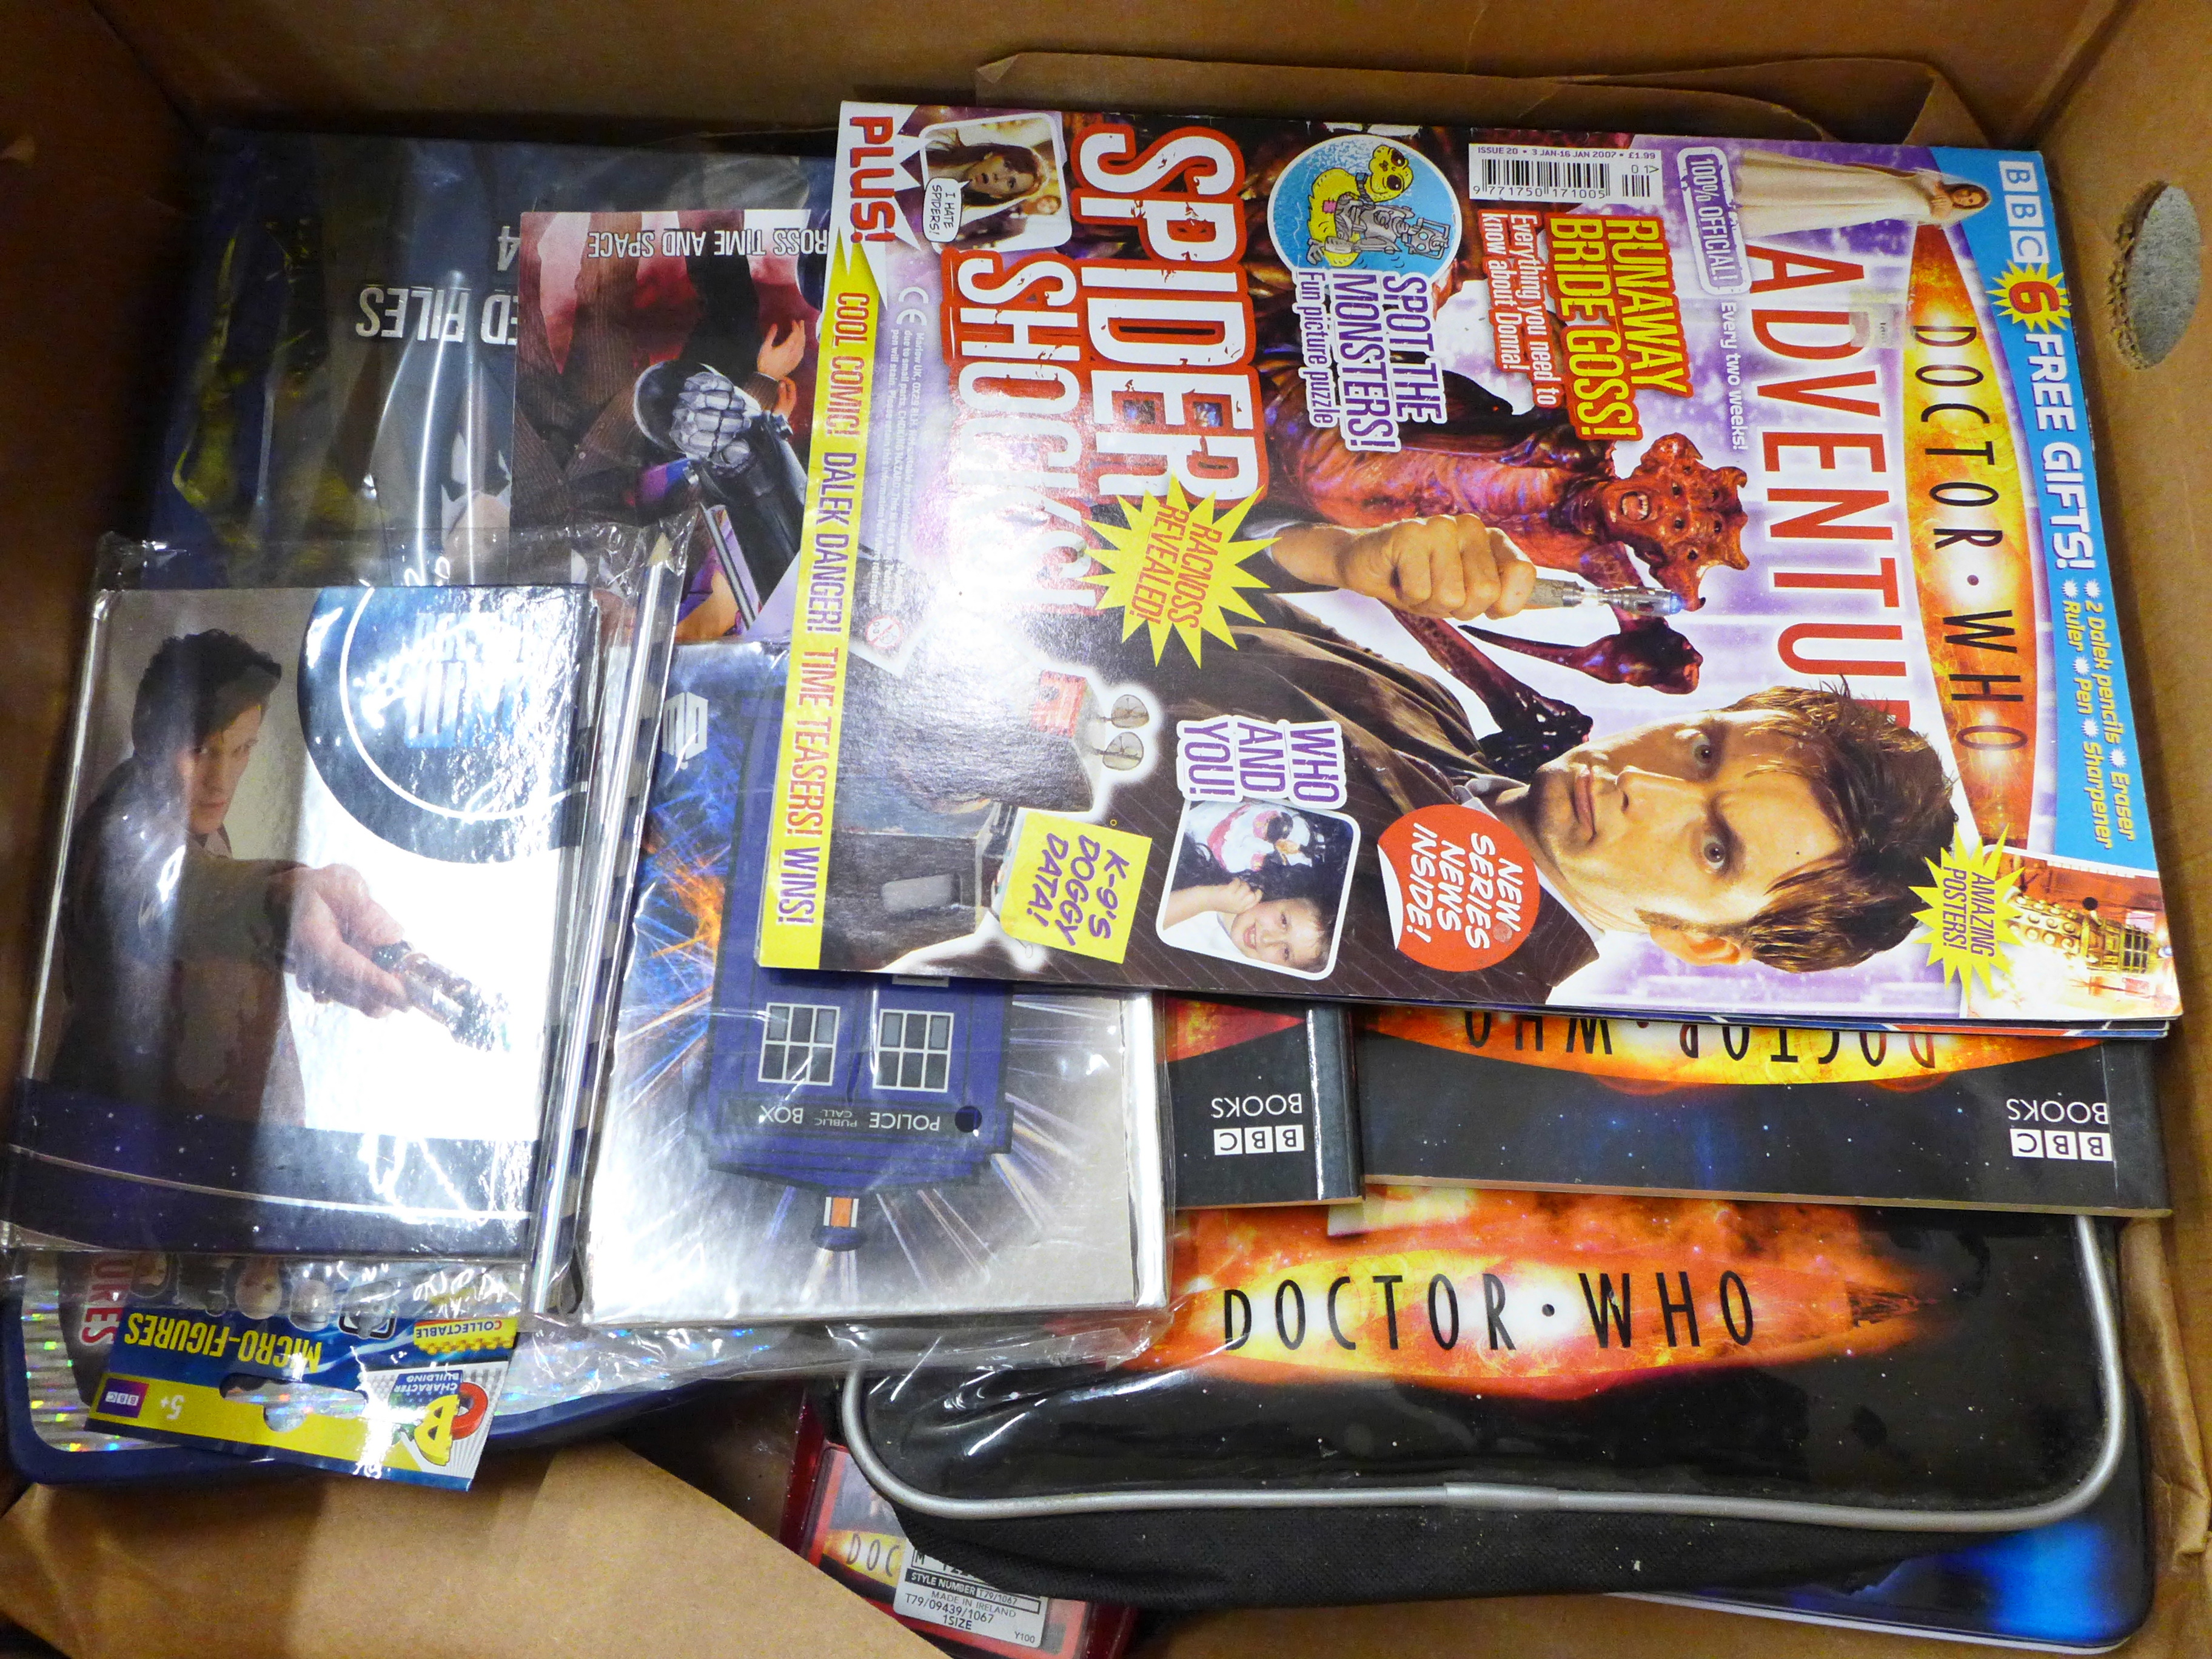 A collection of vintage Doctor Who merchandise and games, including a radio controlled Dalek - Image 3 of 3